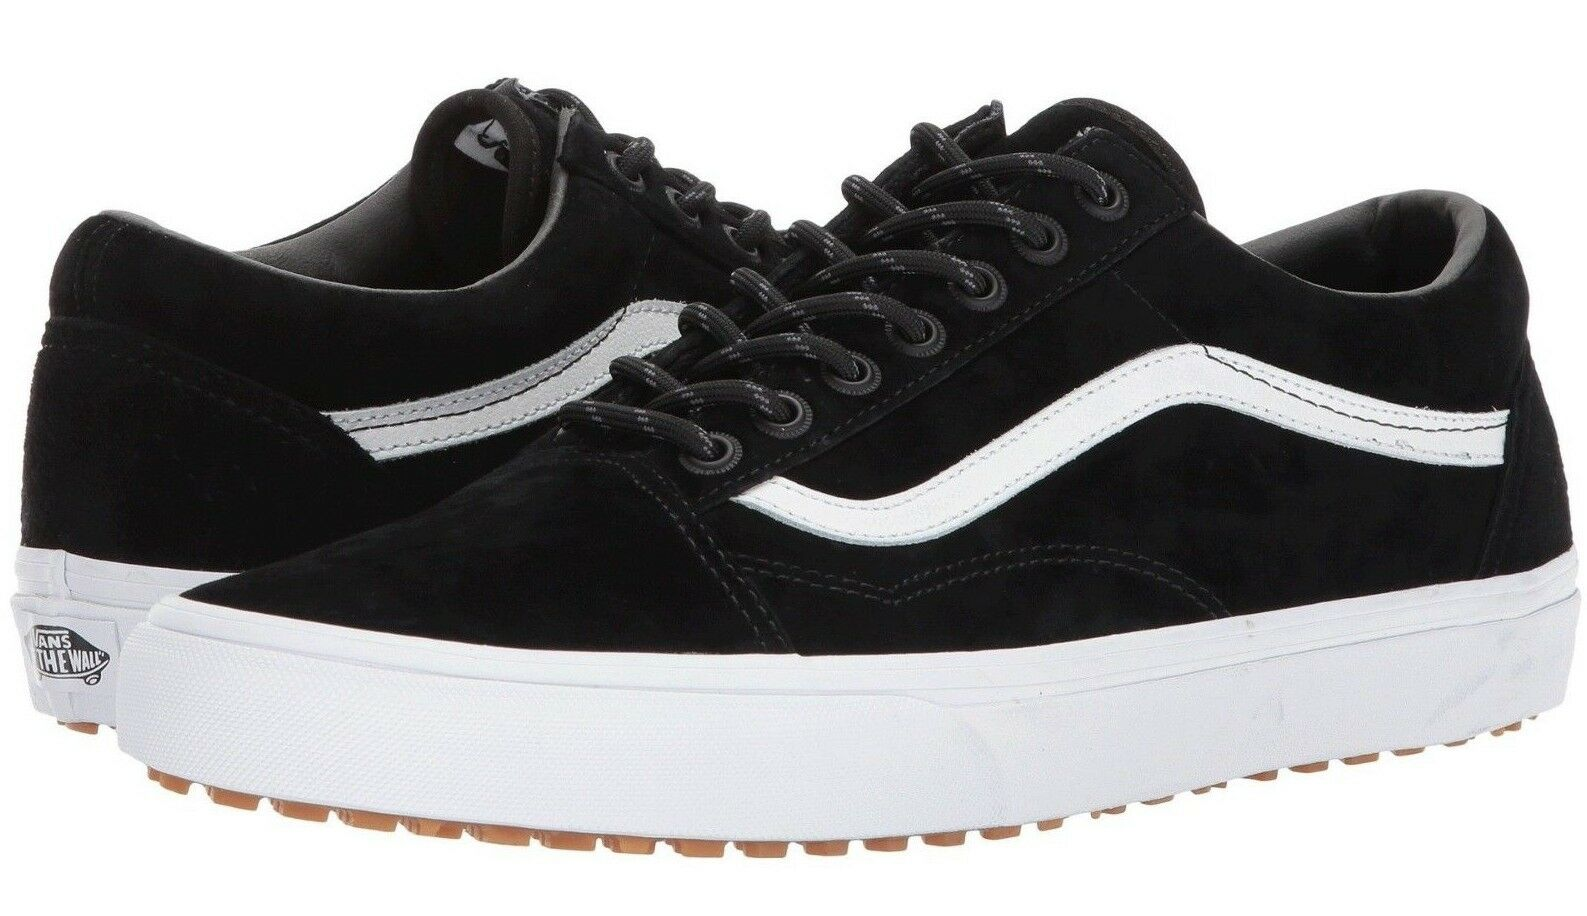 Vans Old Skool MTE BLACK/WHITE Shoes Size Men's 8.5